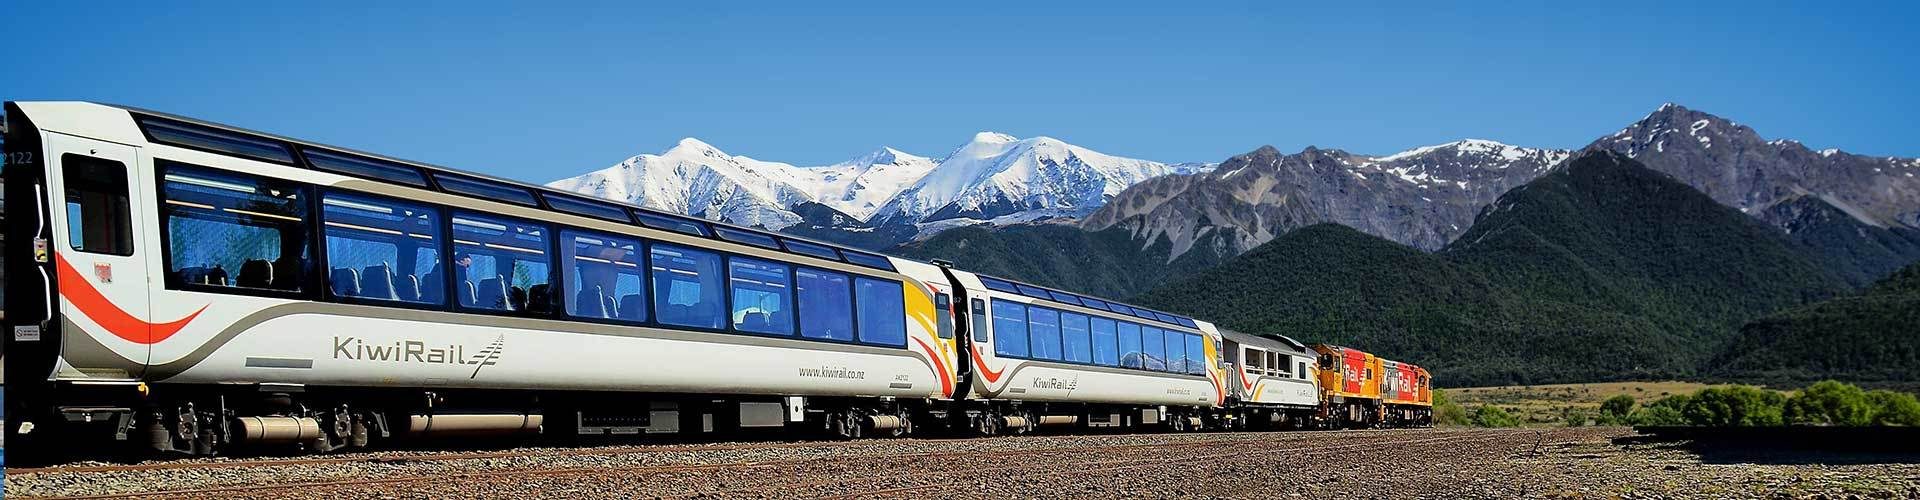 Take the TranzAlpine train on a tour from Christchurch